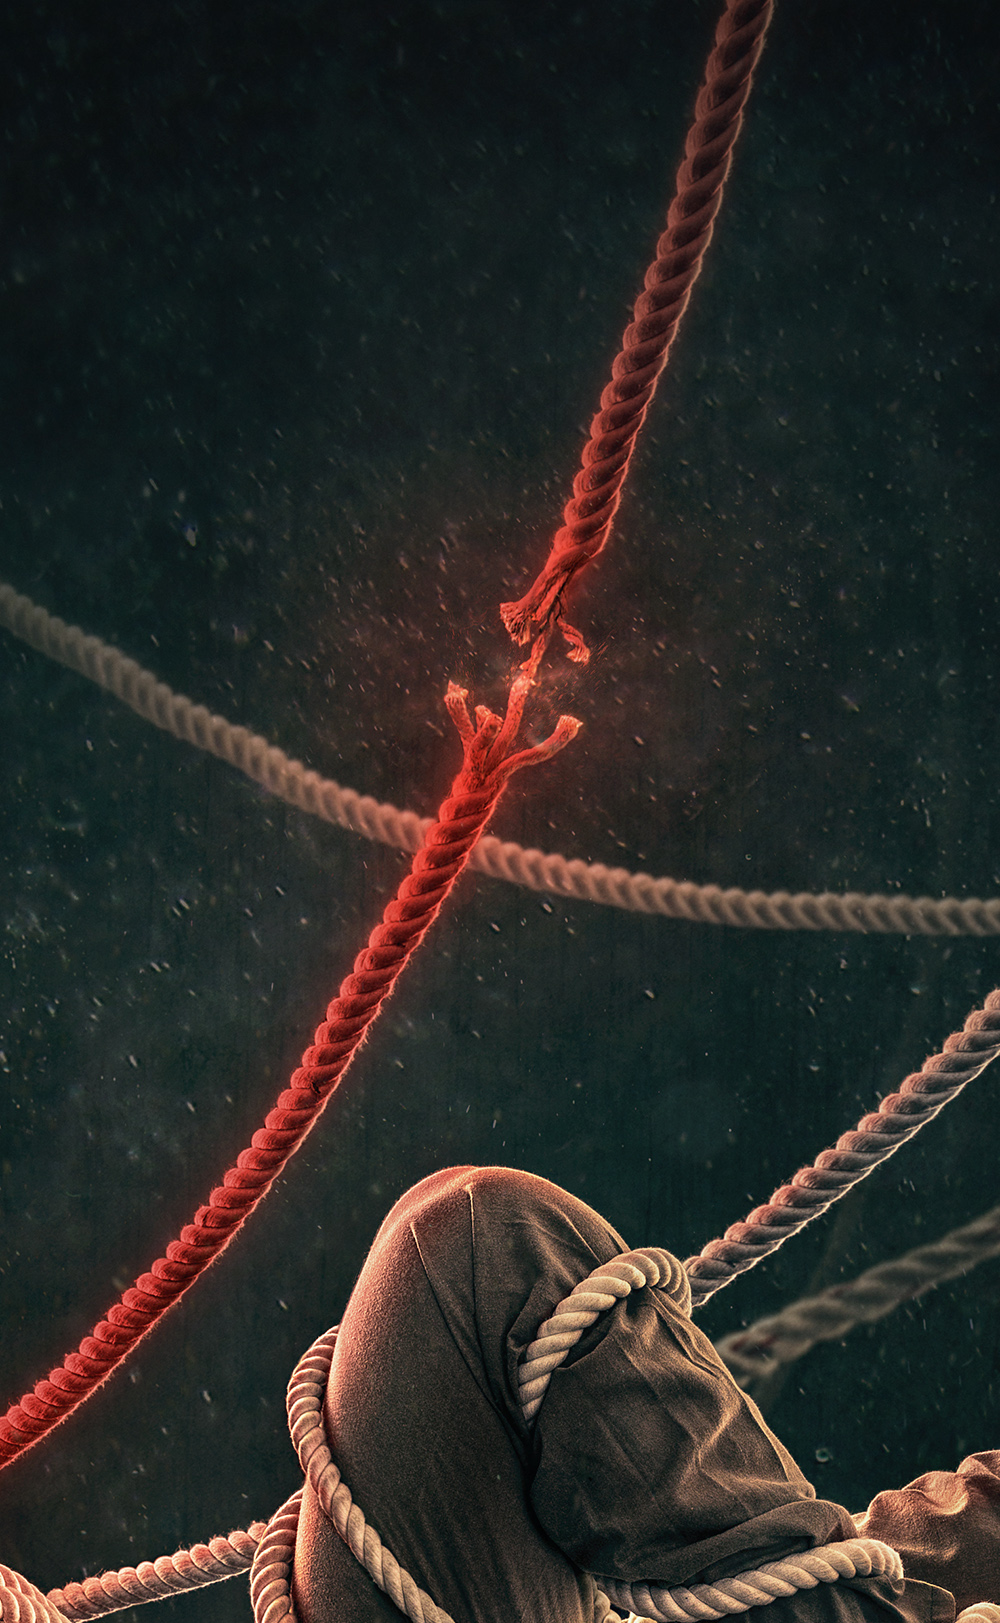 ripping rope close up